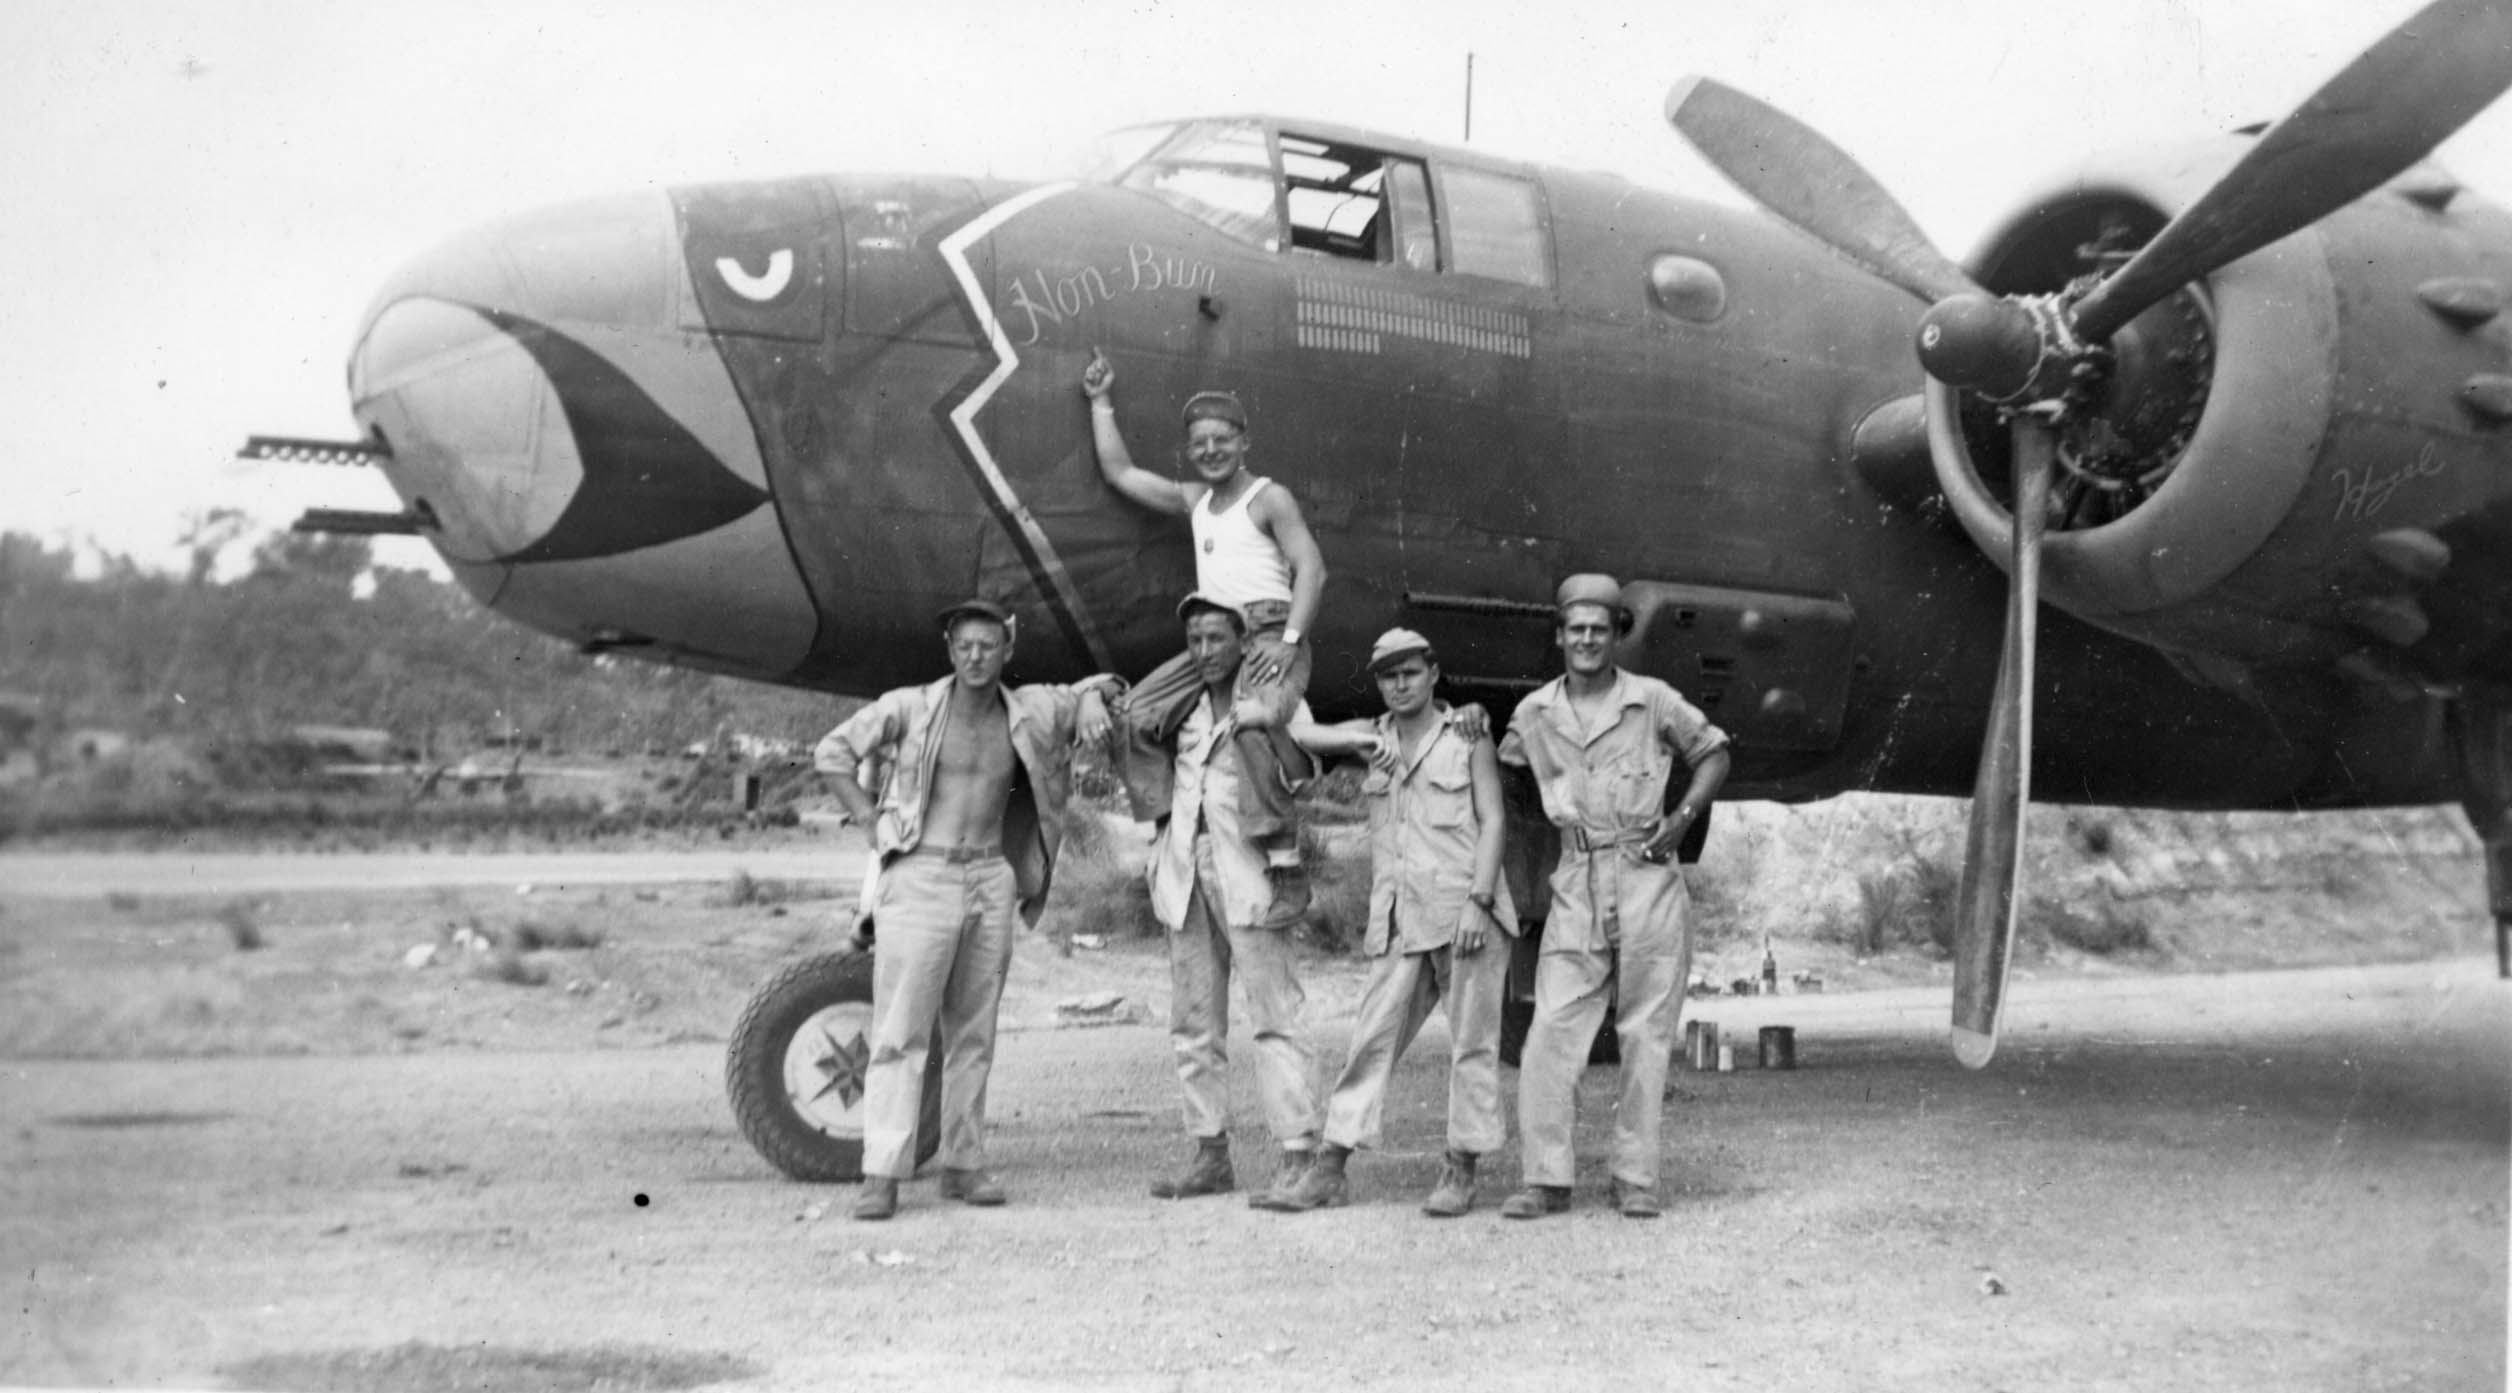 Hon-Bum : B-25 : Planes from Unknown Groups or Squadrons : Sharpe 37 (Thomas Sharpe Collection)